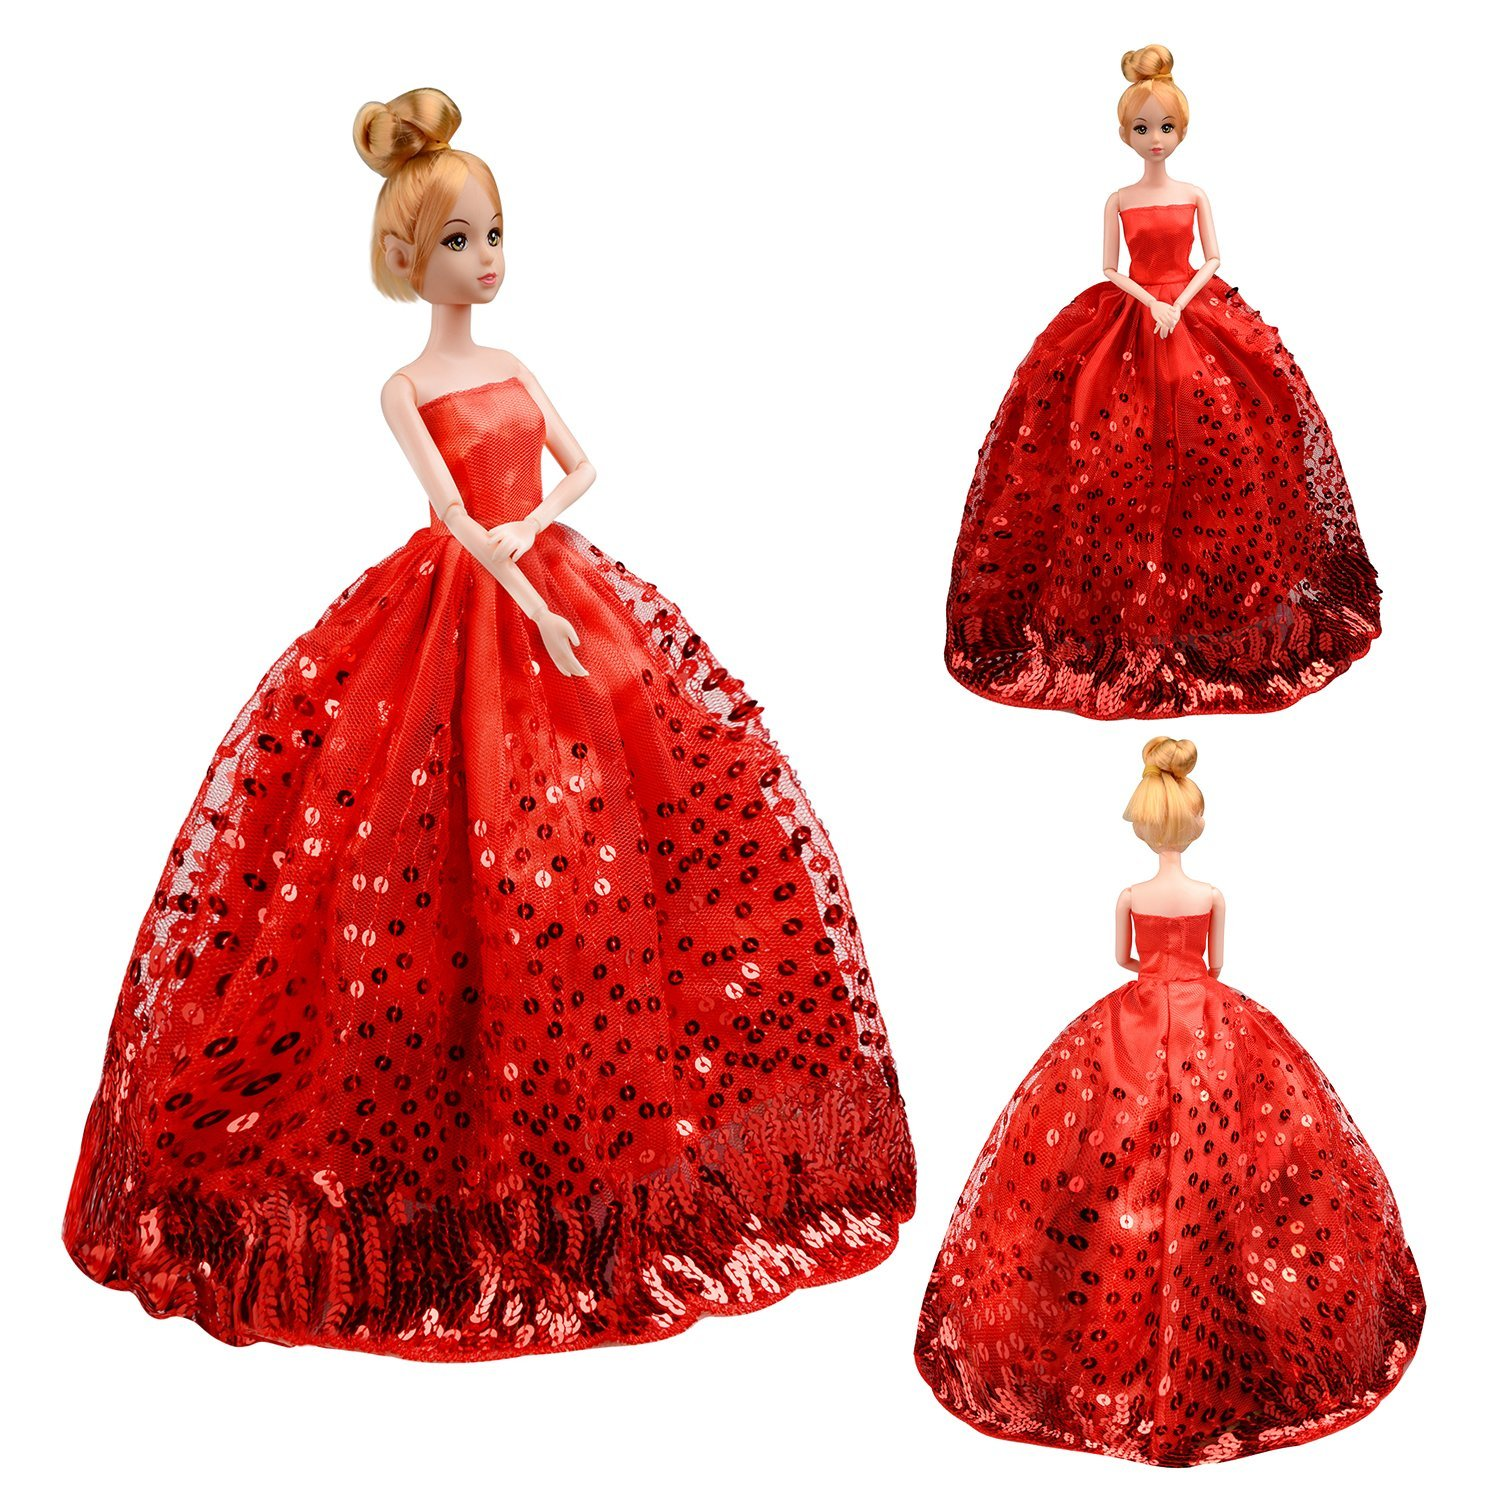 Saleaman Gorgeous Handmade Wedding Dress Made to Fit For Barbie Doll Accessories With Long Dress Toys For Girl Xmas Gift